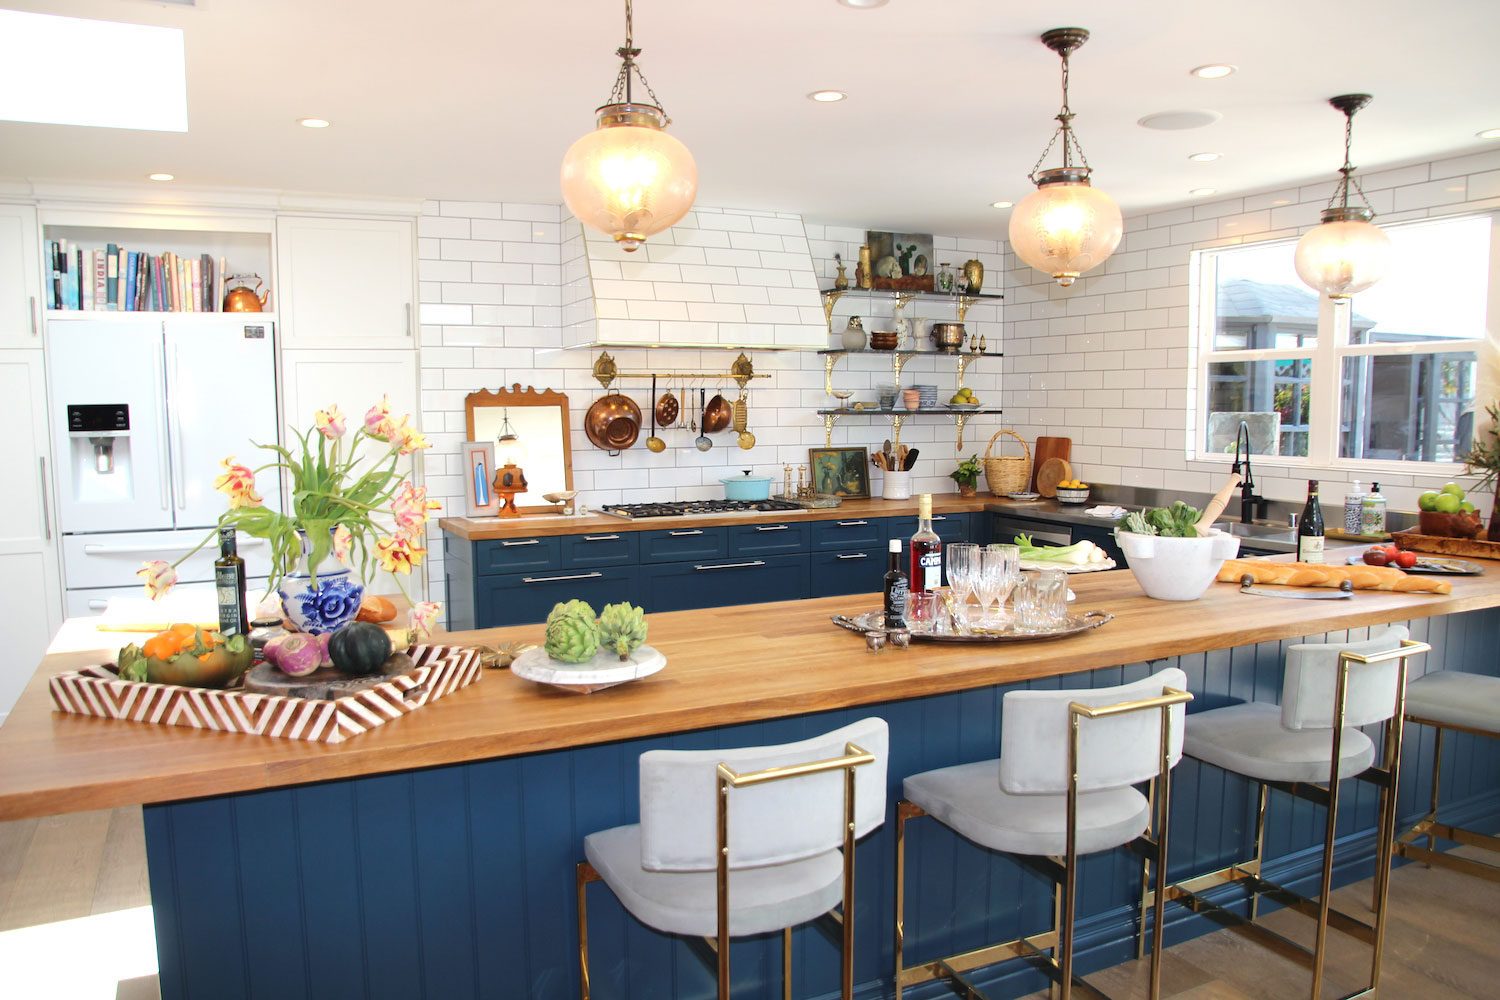 Newport Harbor Home and Garden Tour 1207 Berkshire kitchen with island